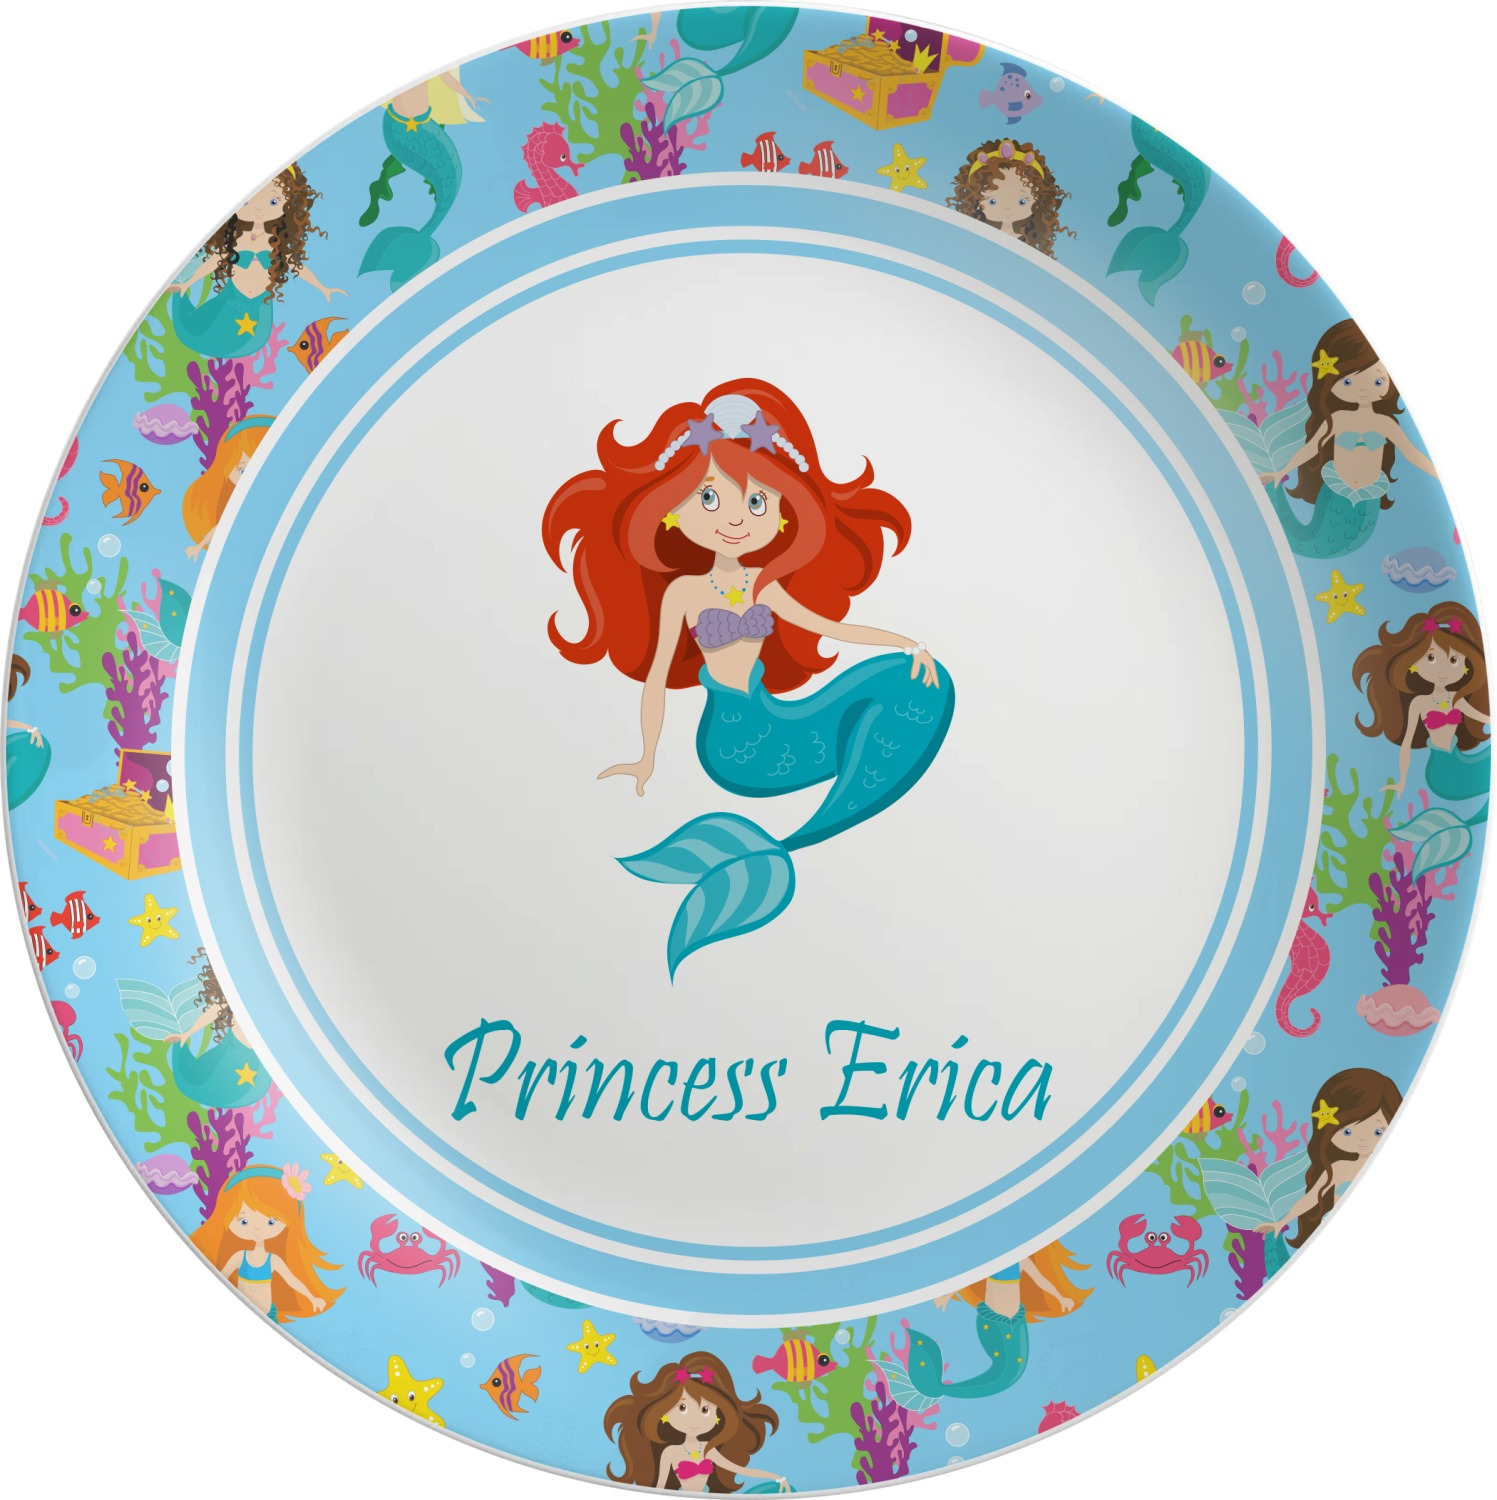 Mermaids Melamine Plate (Personalized)  sc 1 st  YouCustomizeIt & Mermaids Melamine Plate (Personalized) - YouCustomizeIt